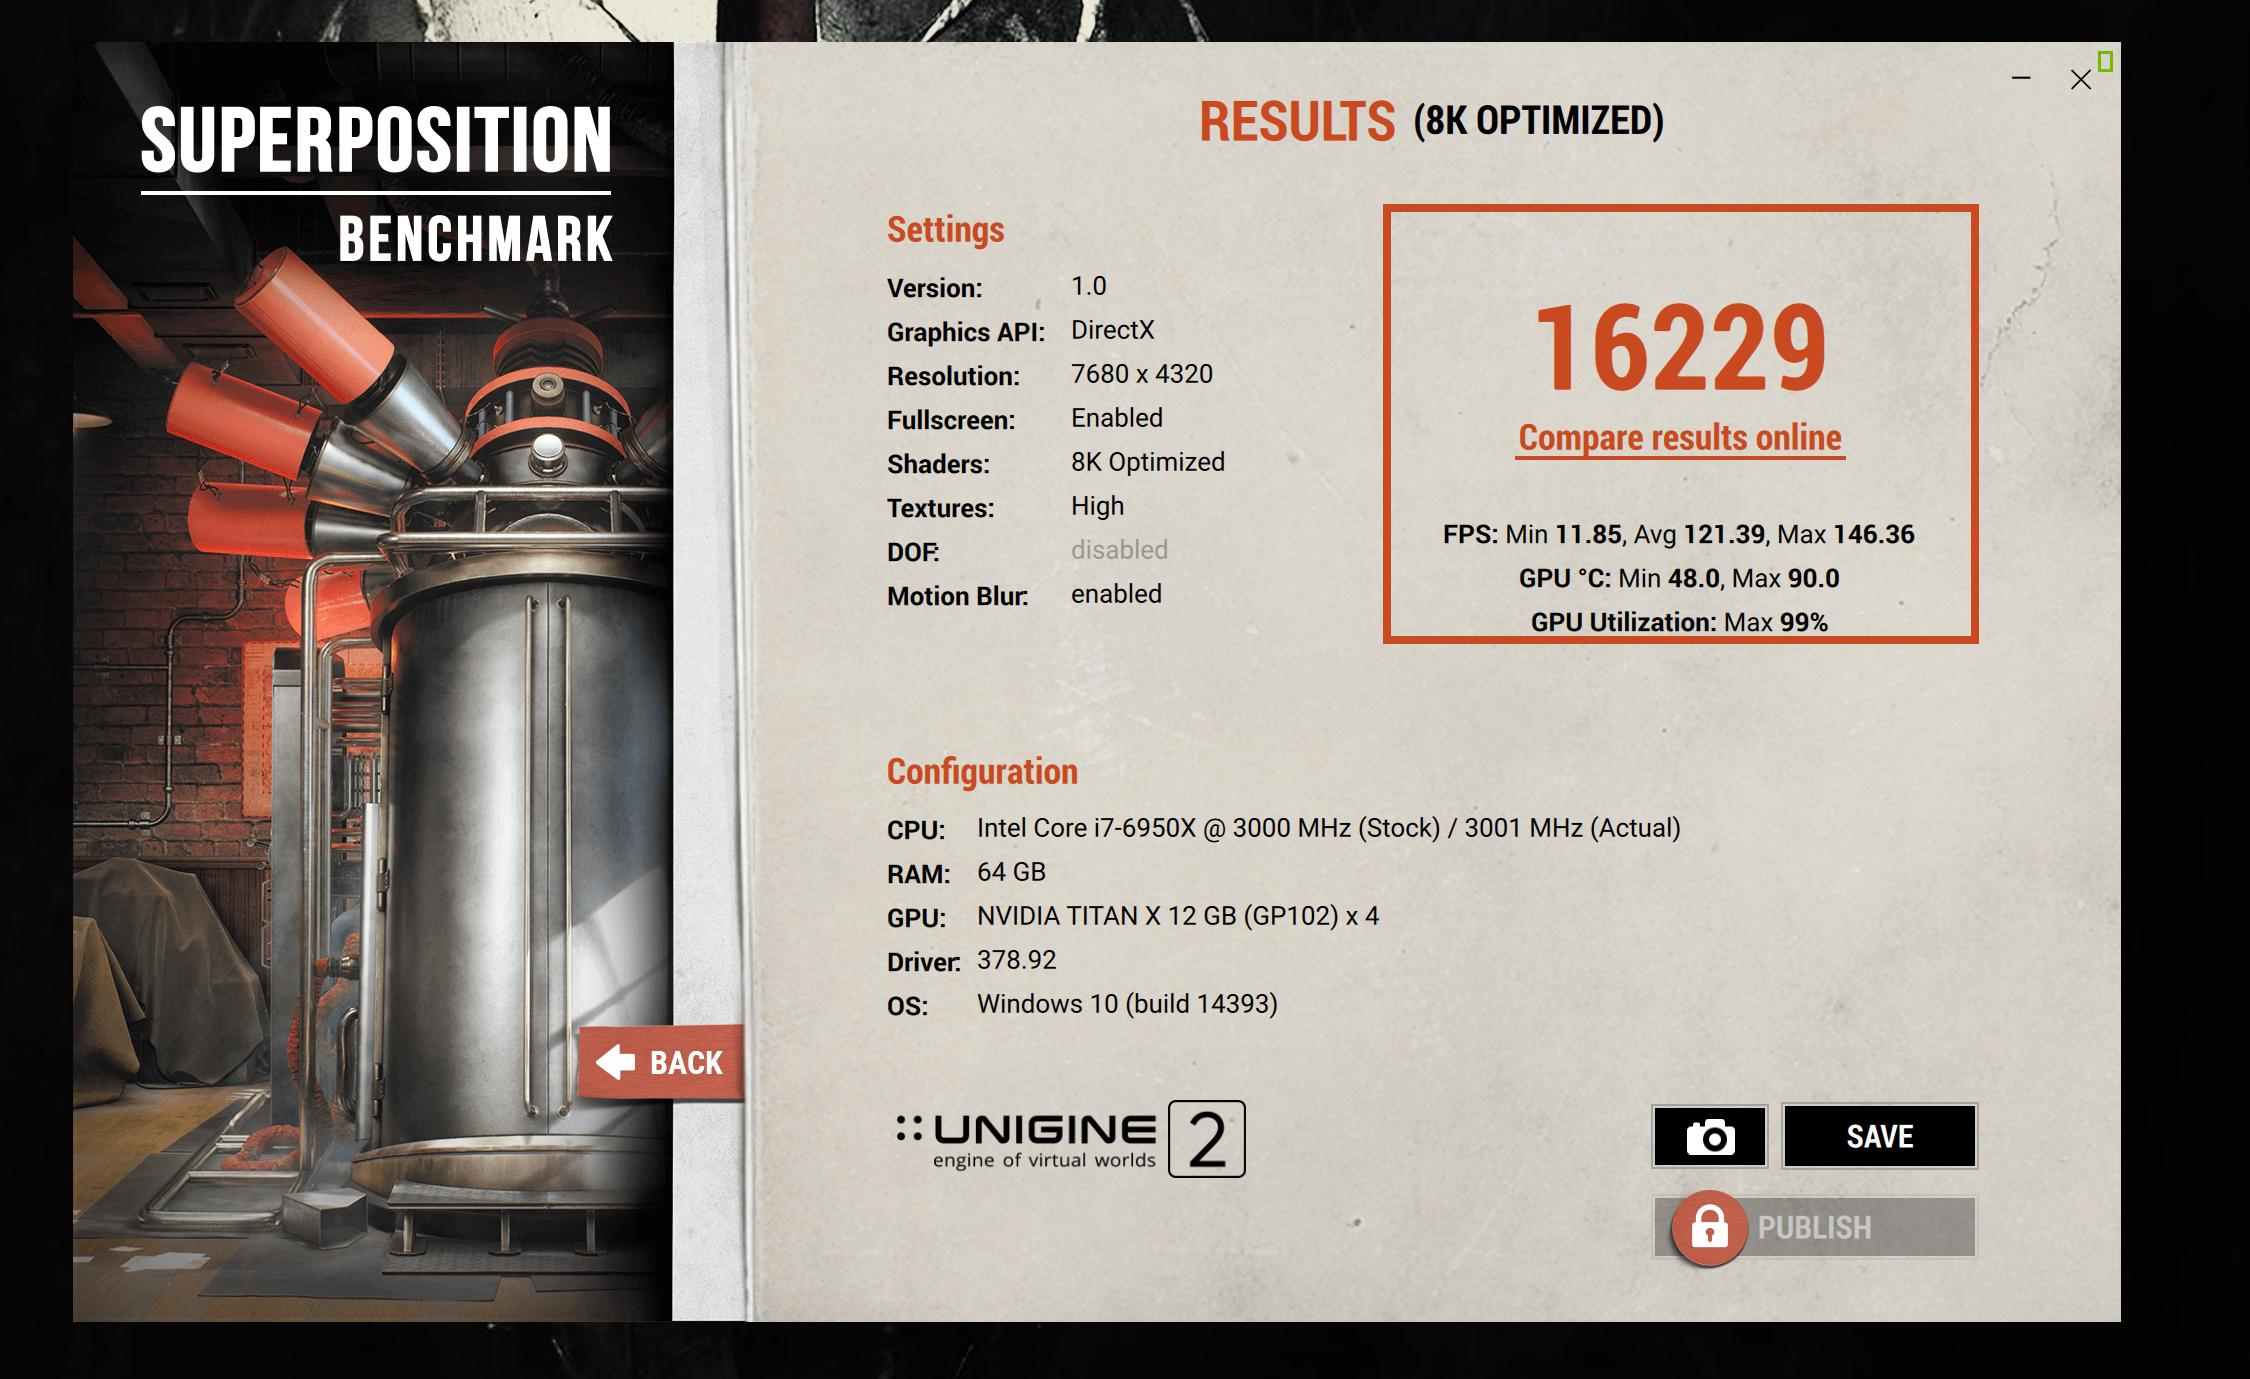 UNiGiNE] Superposition Benchmark now available for download